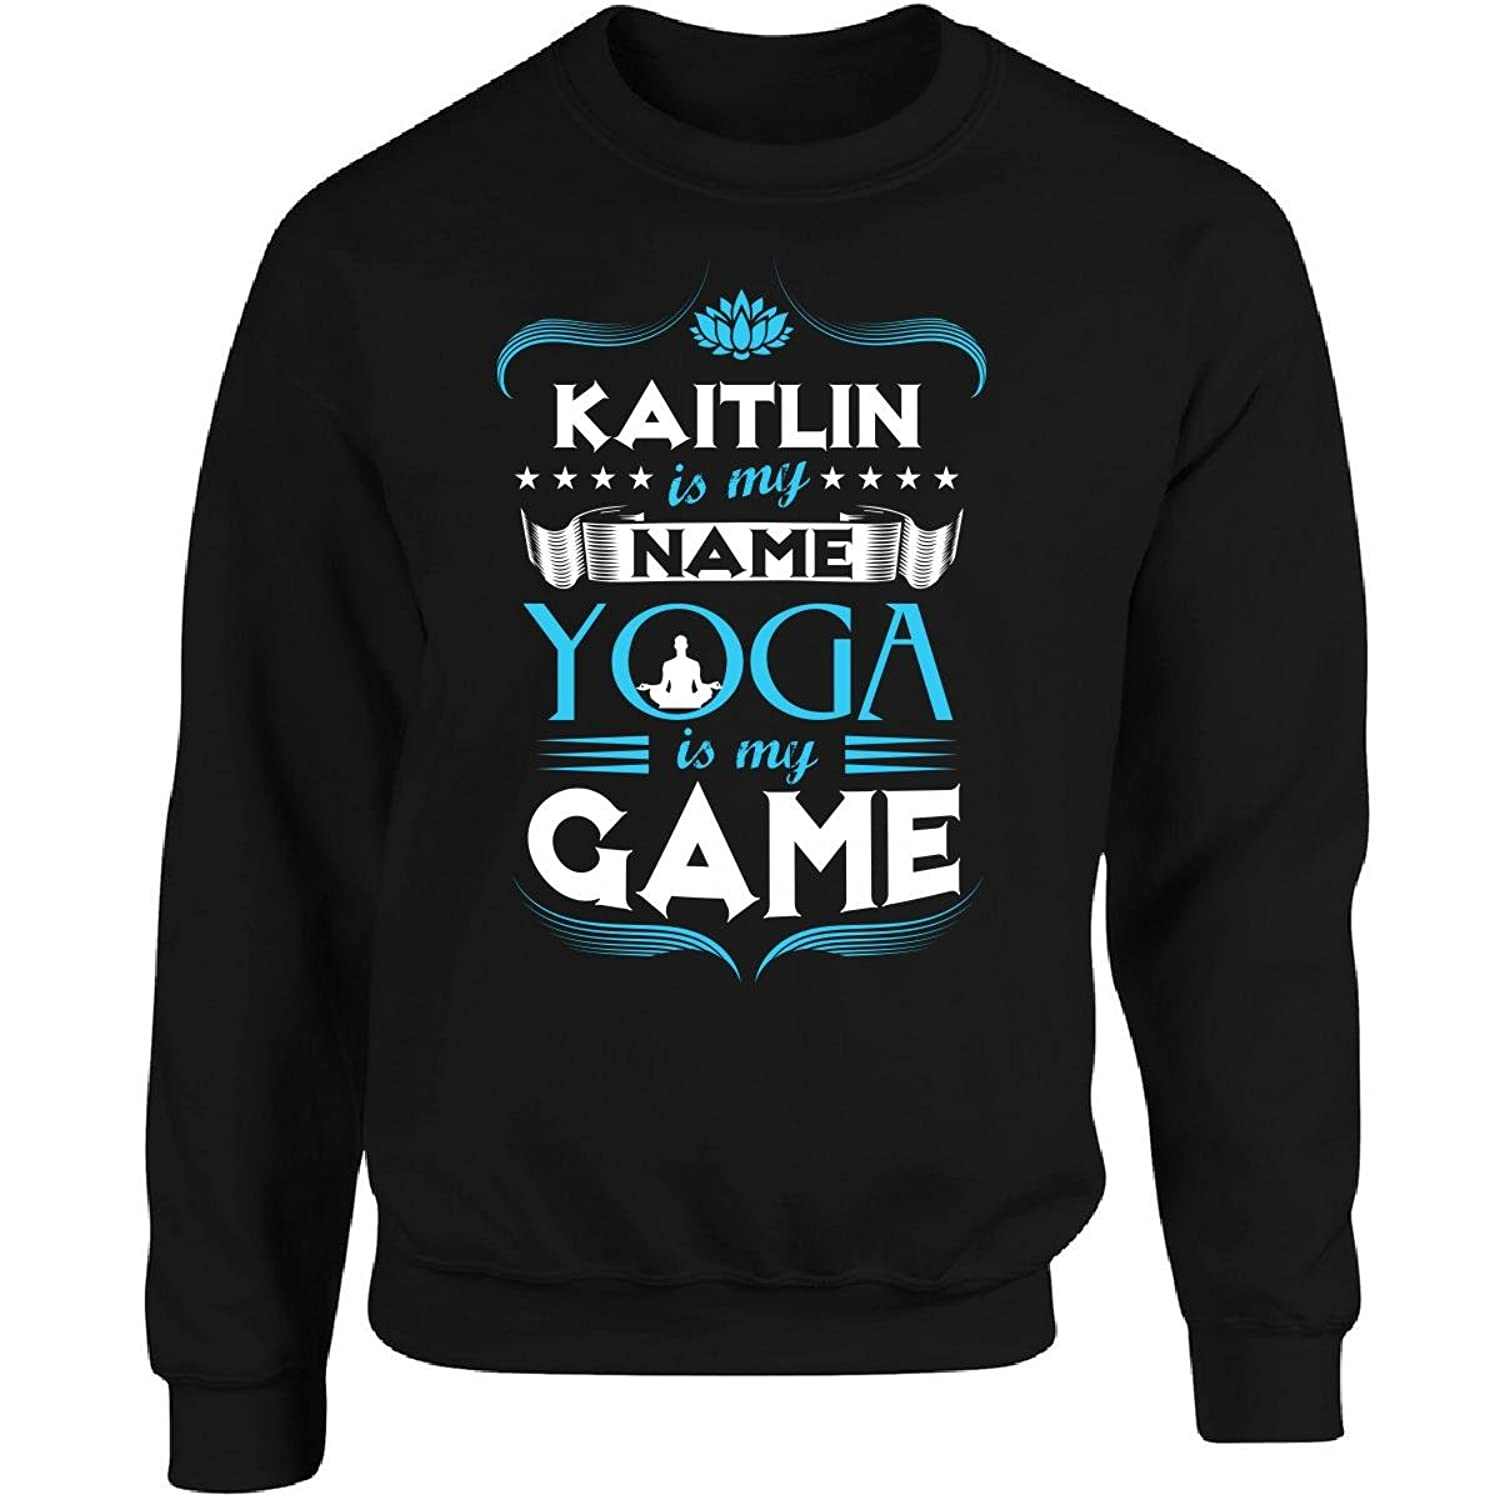 Amazon.com: Kaitlin My First Name Yoga My Game Yoga Teacher ...